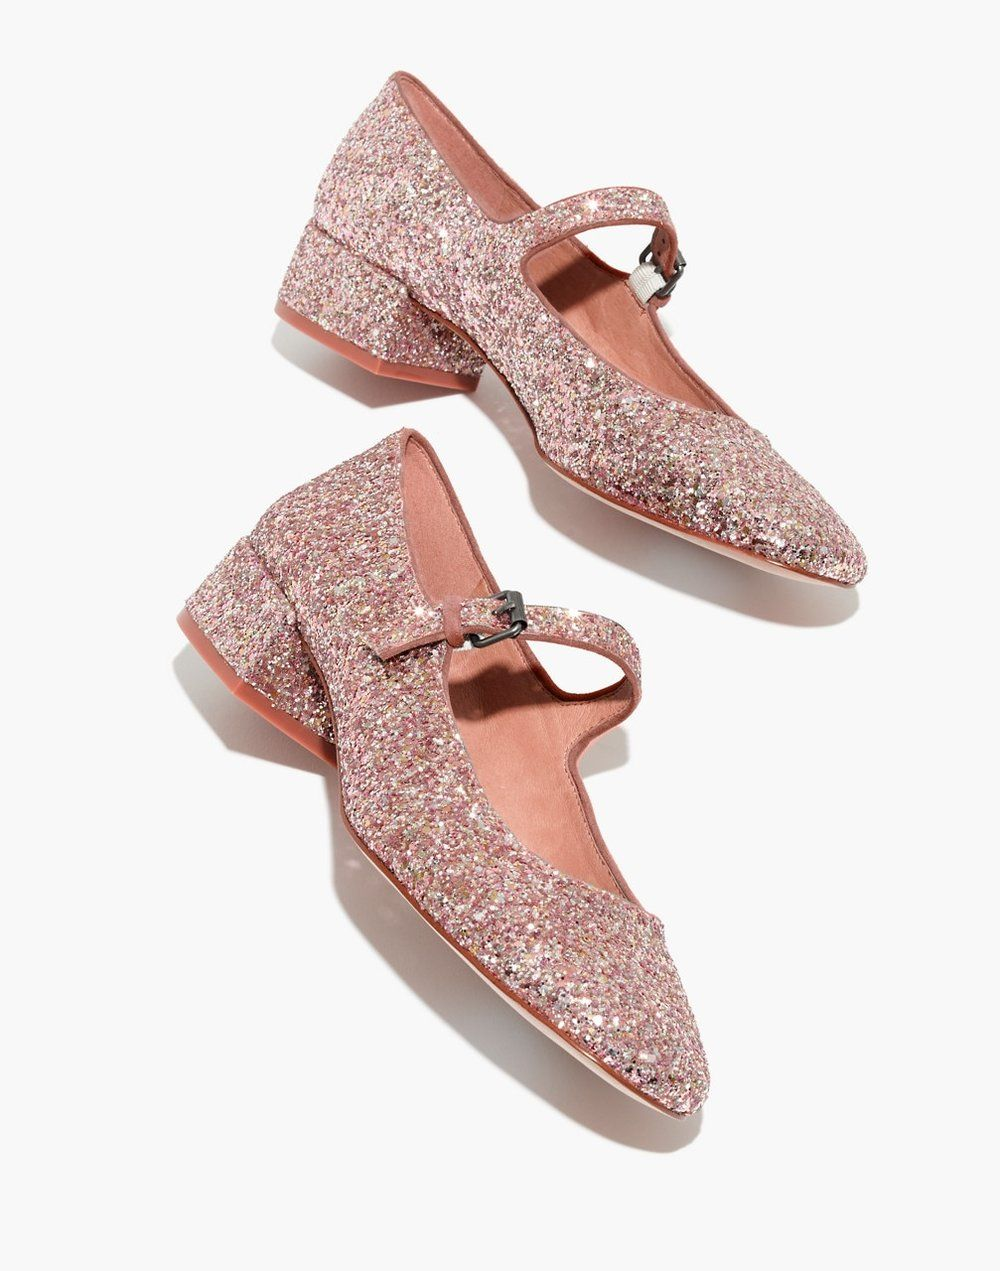 83aded9bd394 These sparkly shoes may be all you ever need for your forever holiday  wardrobe. The Delilah Mary Jane in glitter by Madewell